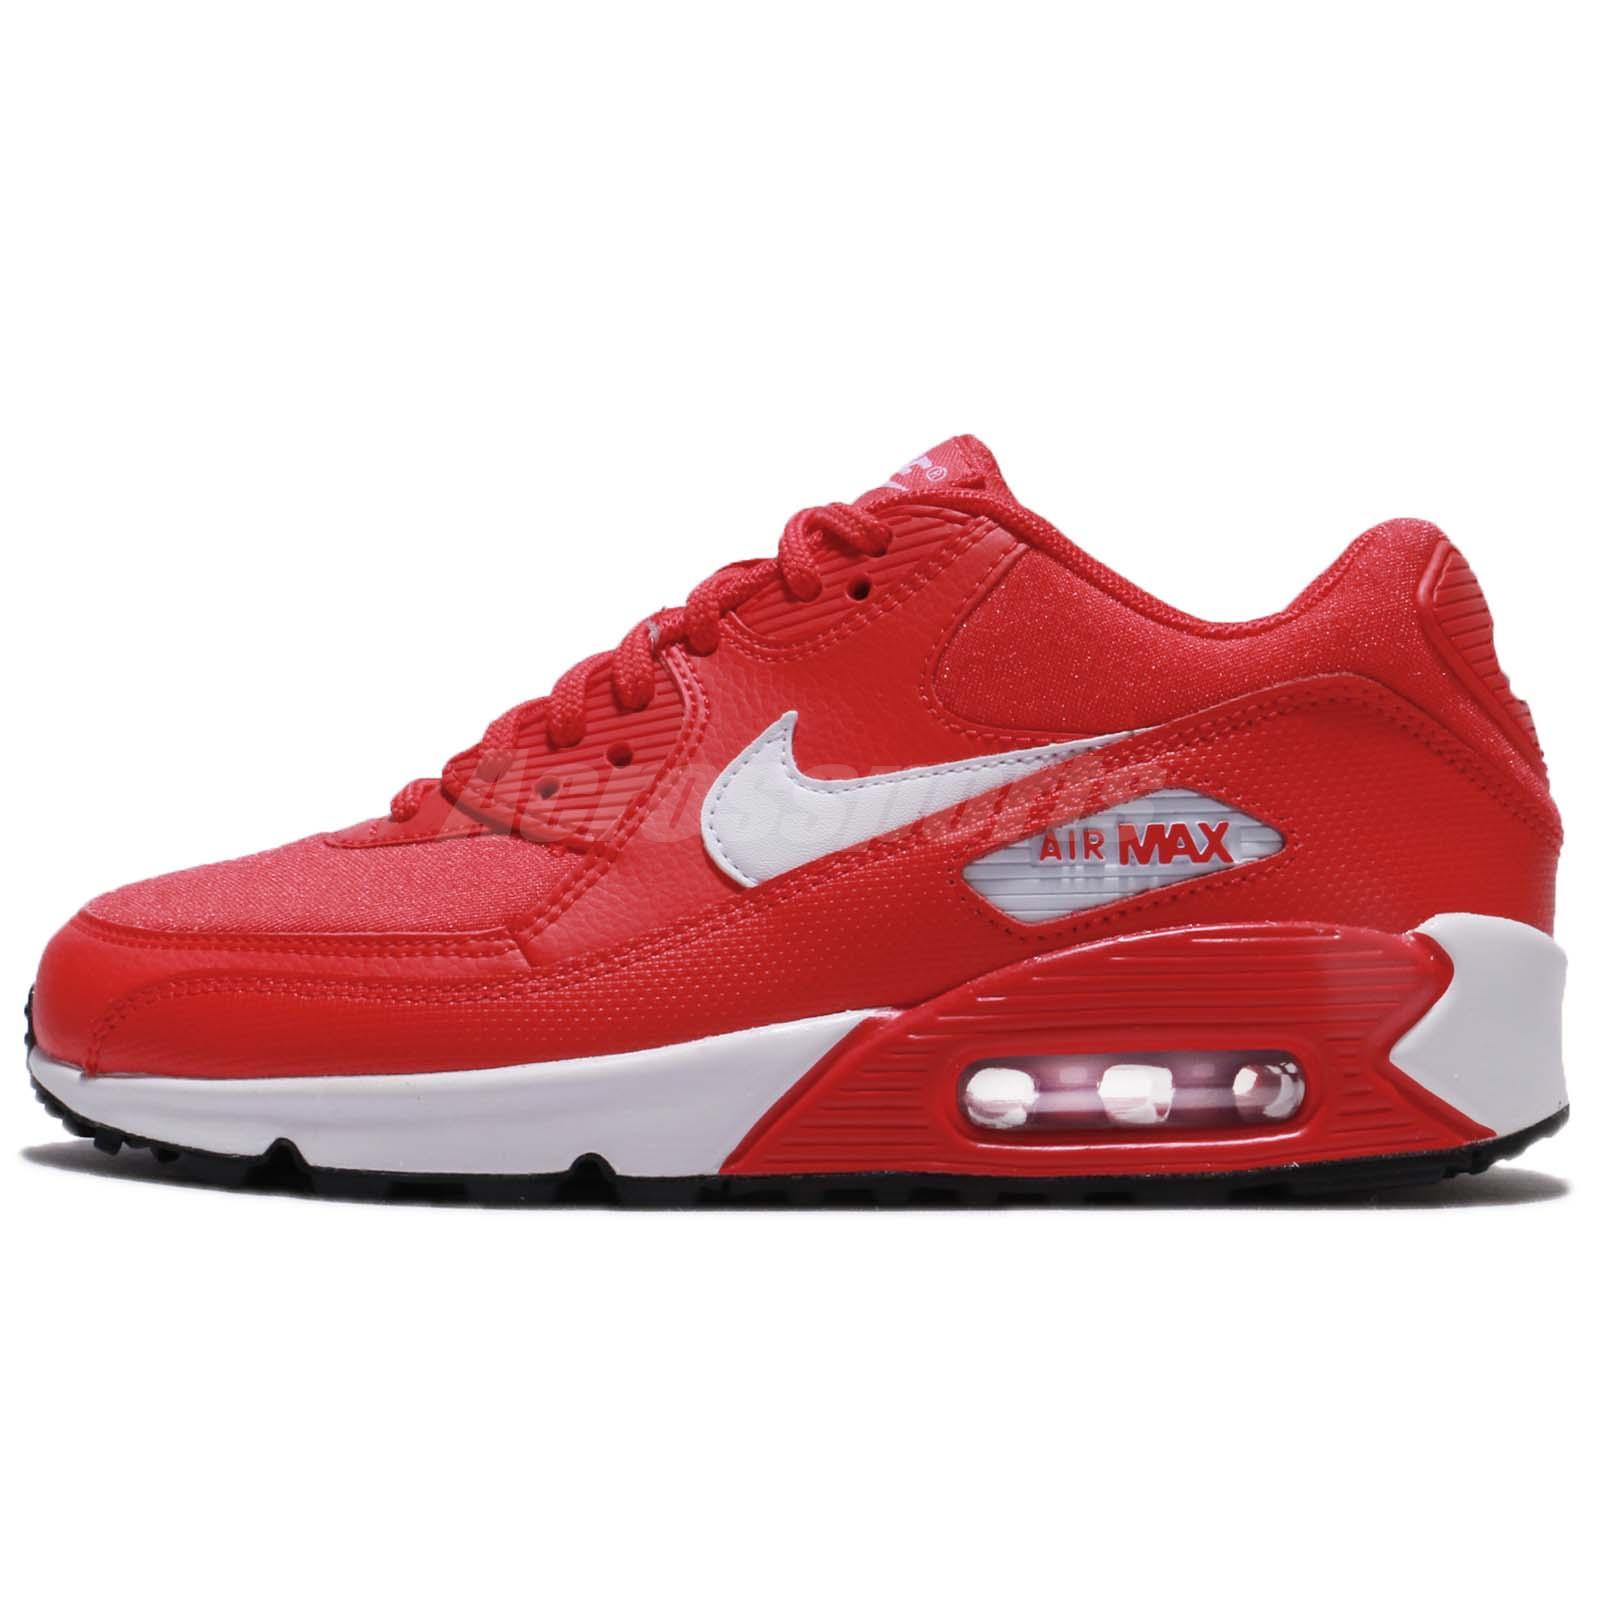 699b0597049 ... free shipping nike wmns air max 90 speed red white women running shoes  sneakers 325213 612